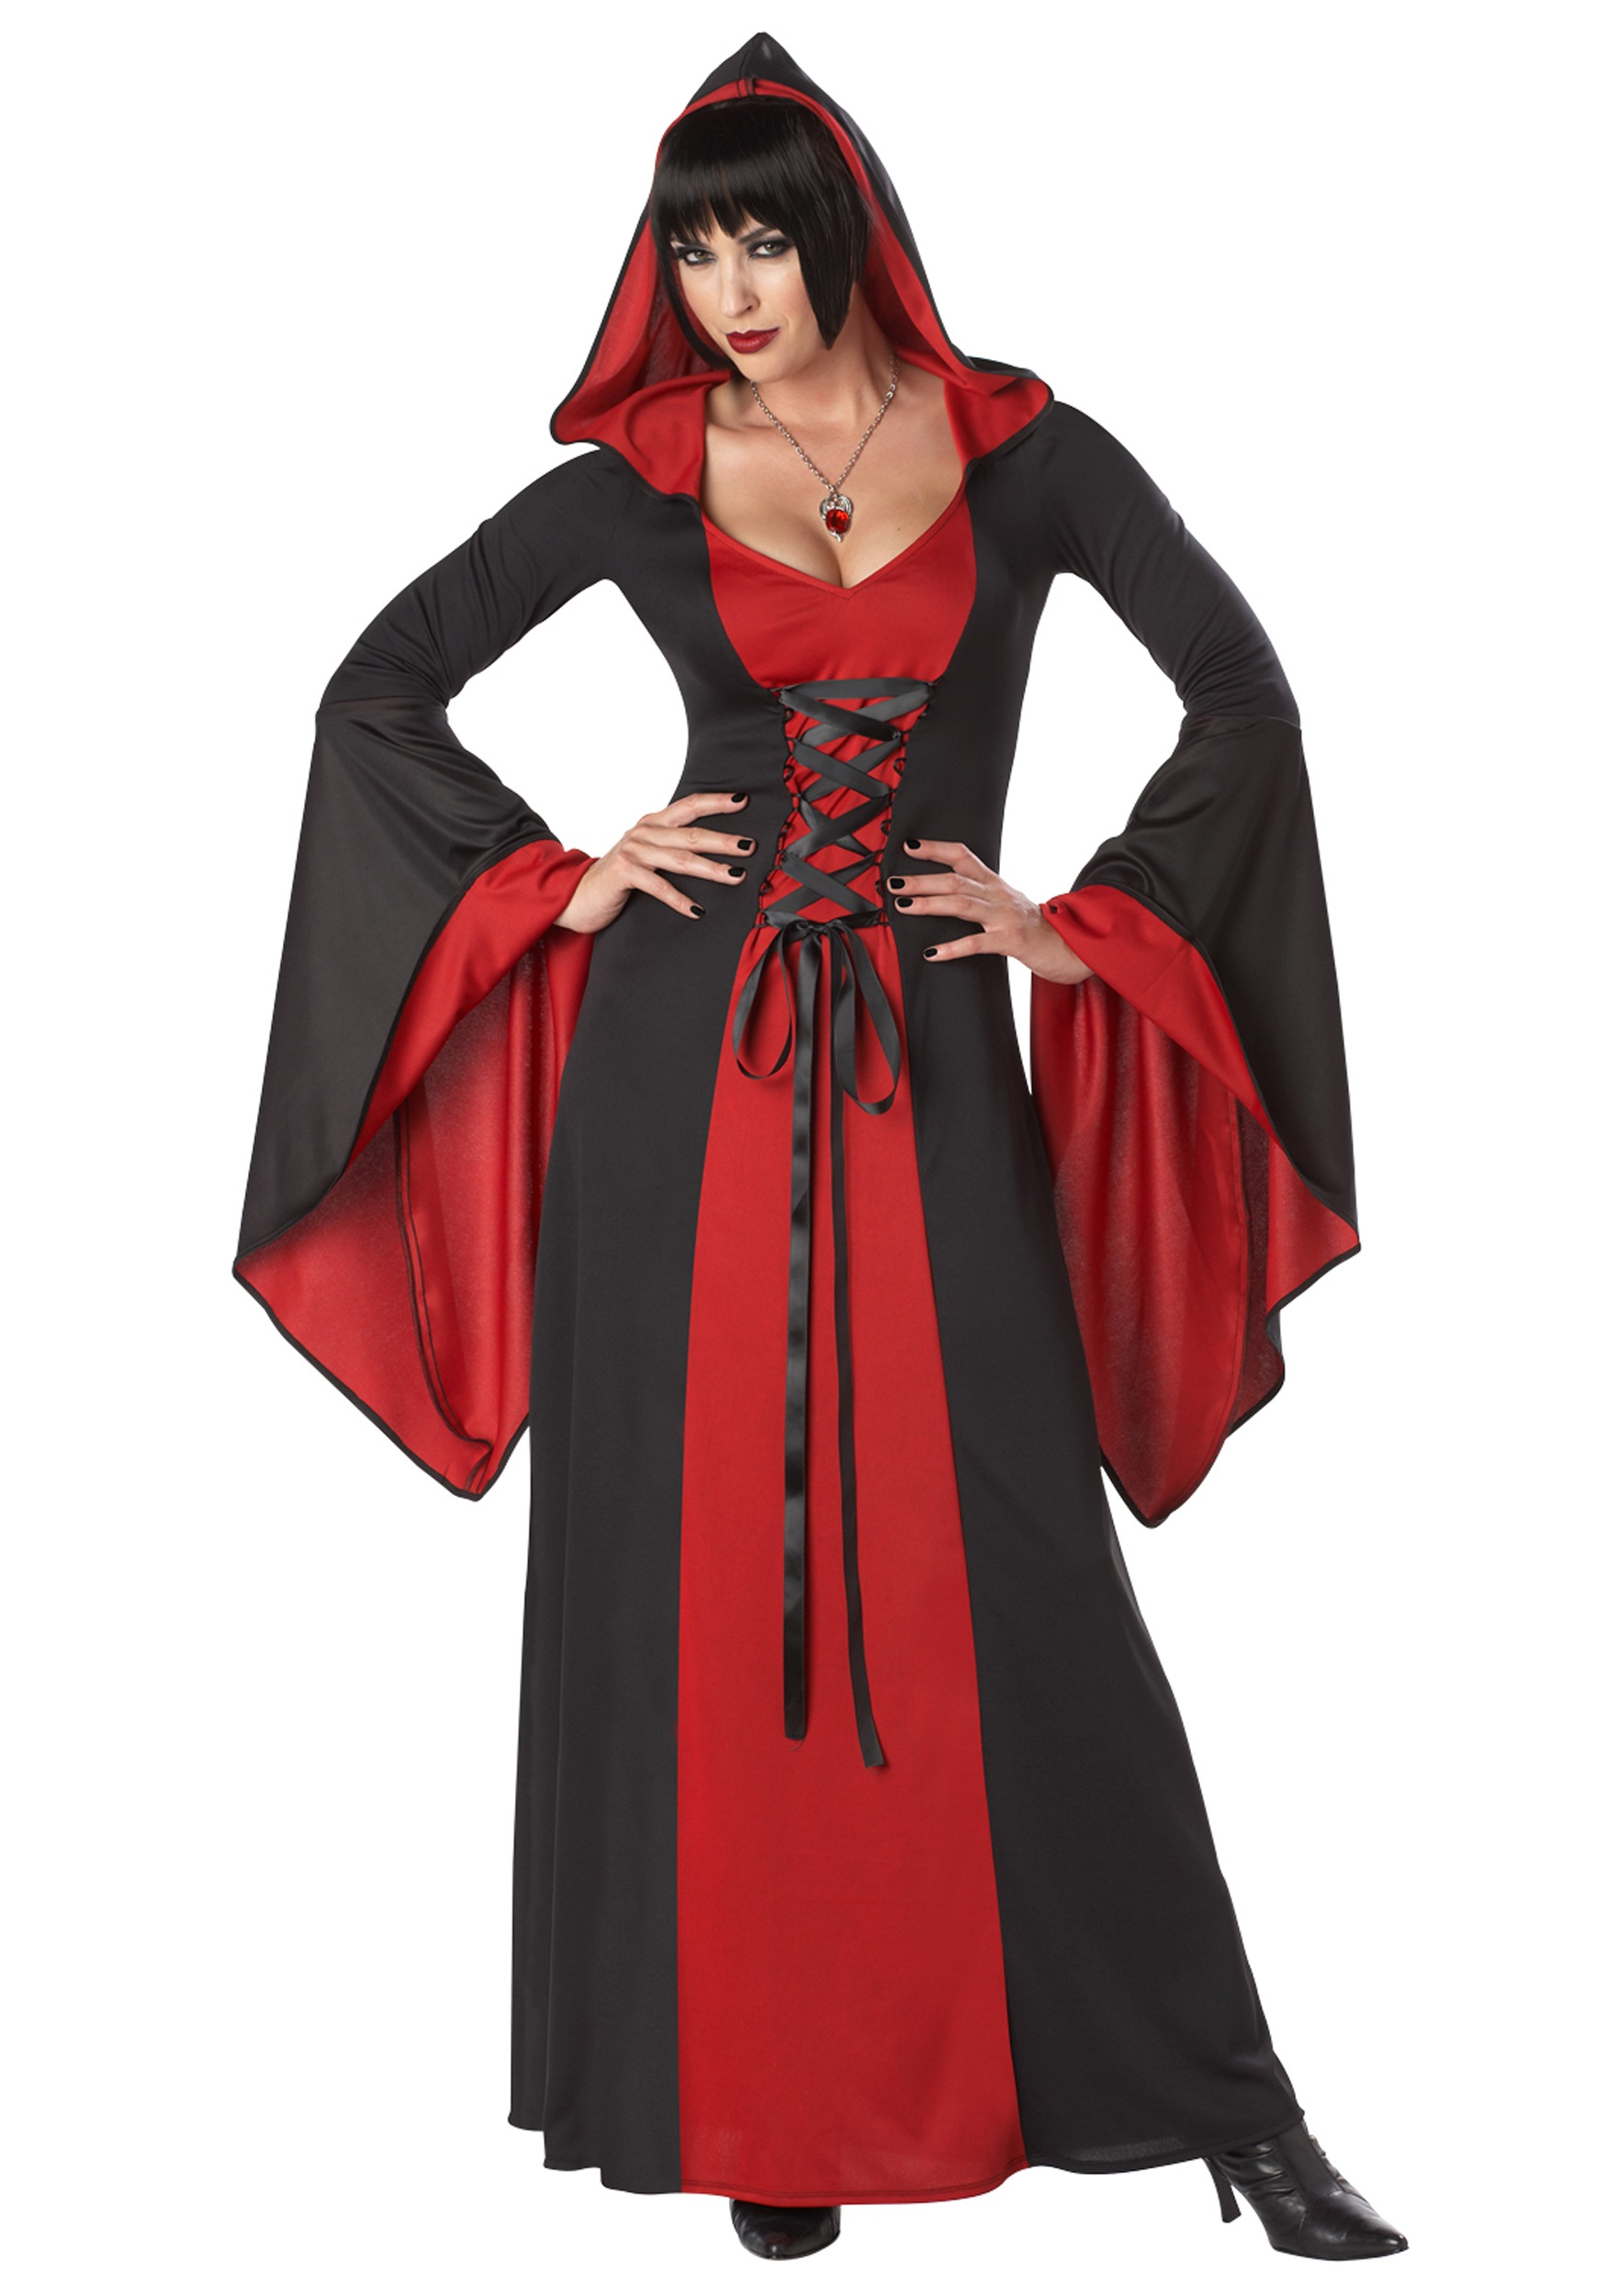 Deluxe Hooded Robe Costume For Women